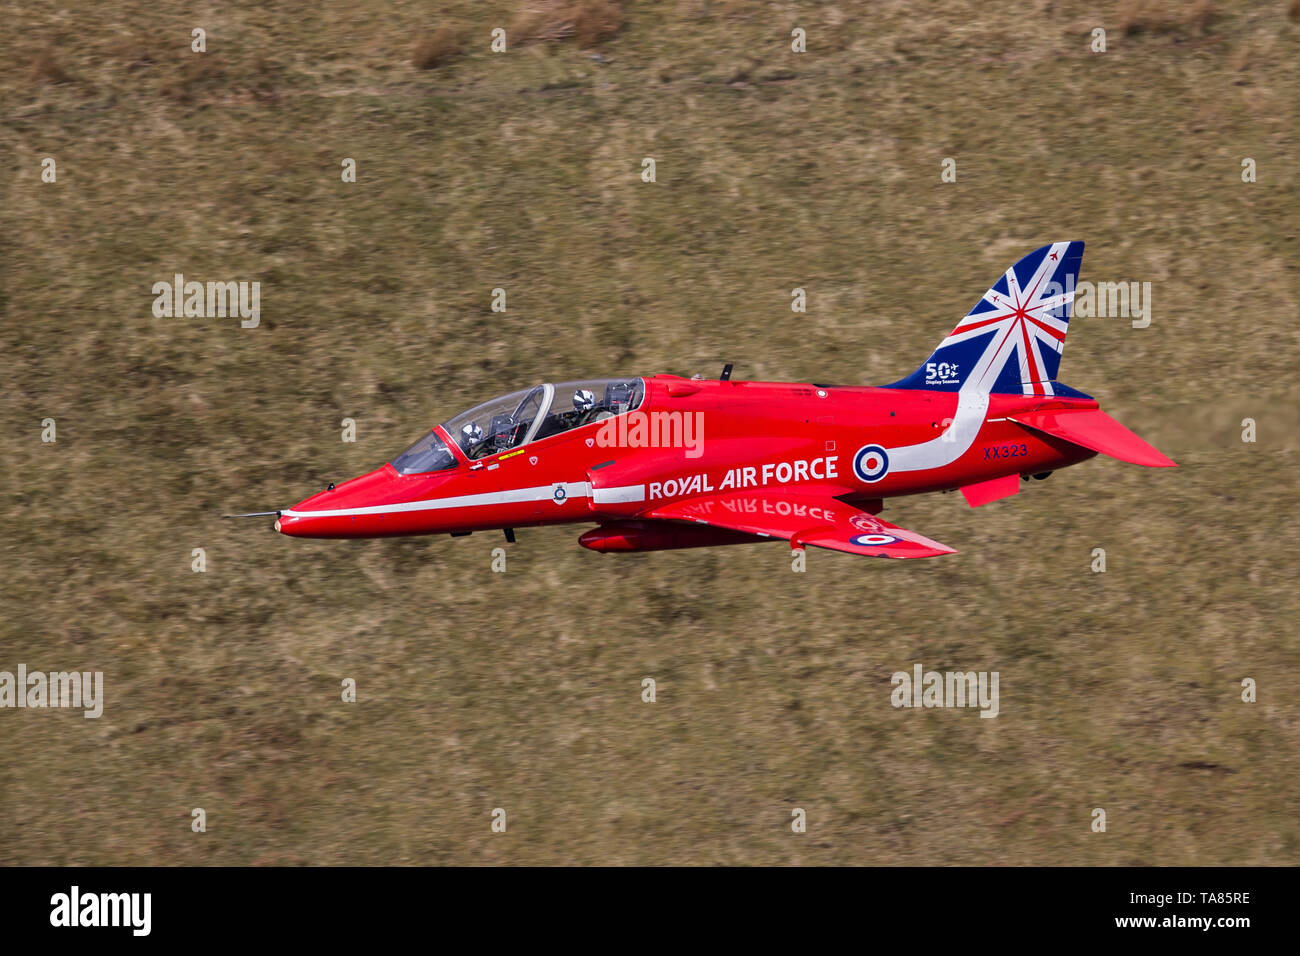 RAF Red Arrows Hawk T1 flying low level in the Mach Loop in Wales, UK Stock Photo